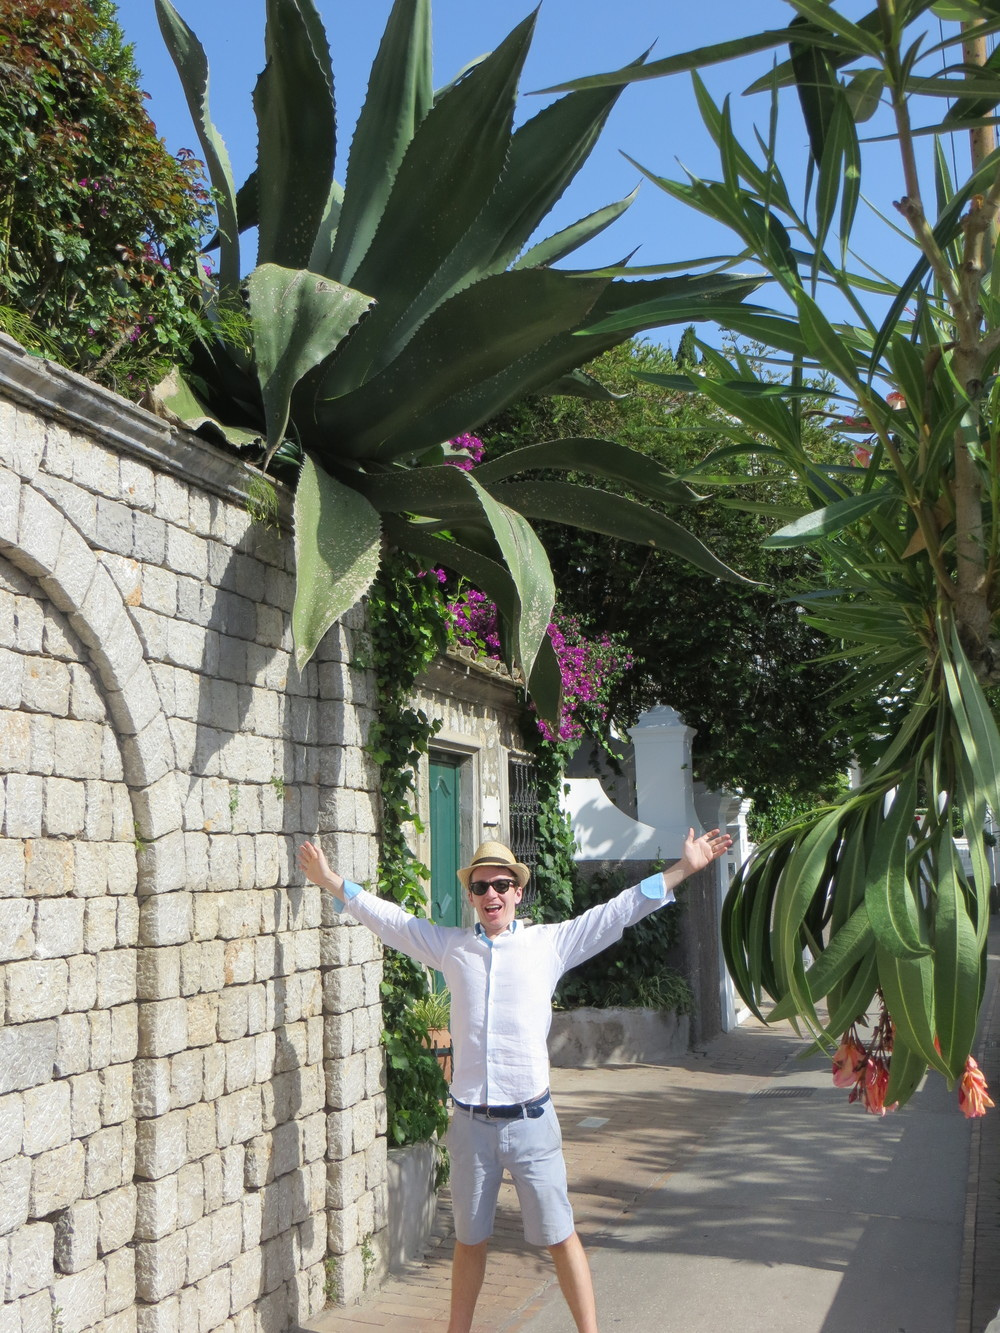 This Agave seemed to be defying the laws of gravity.